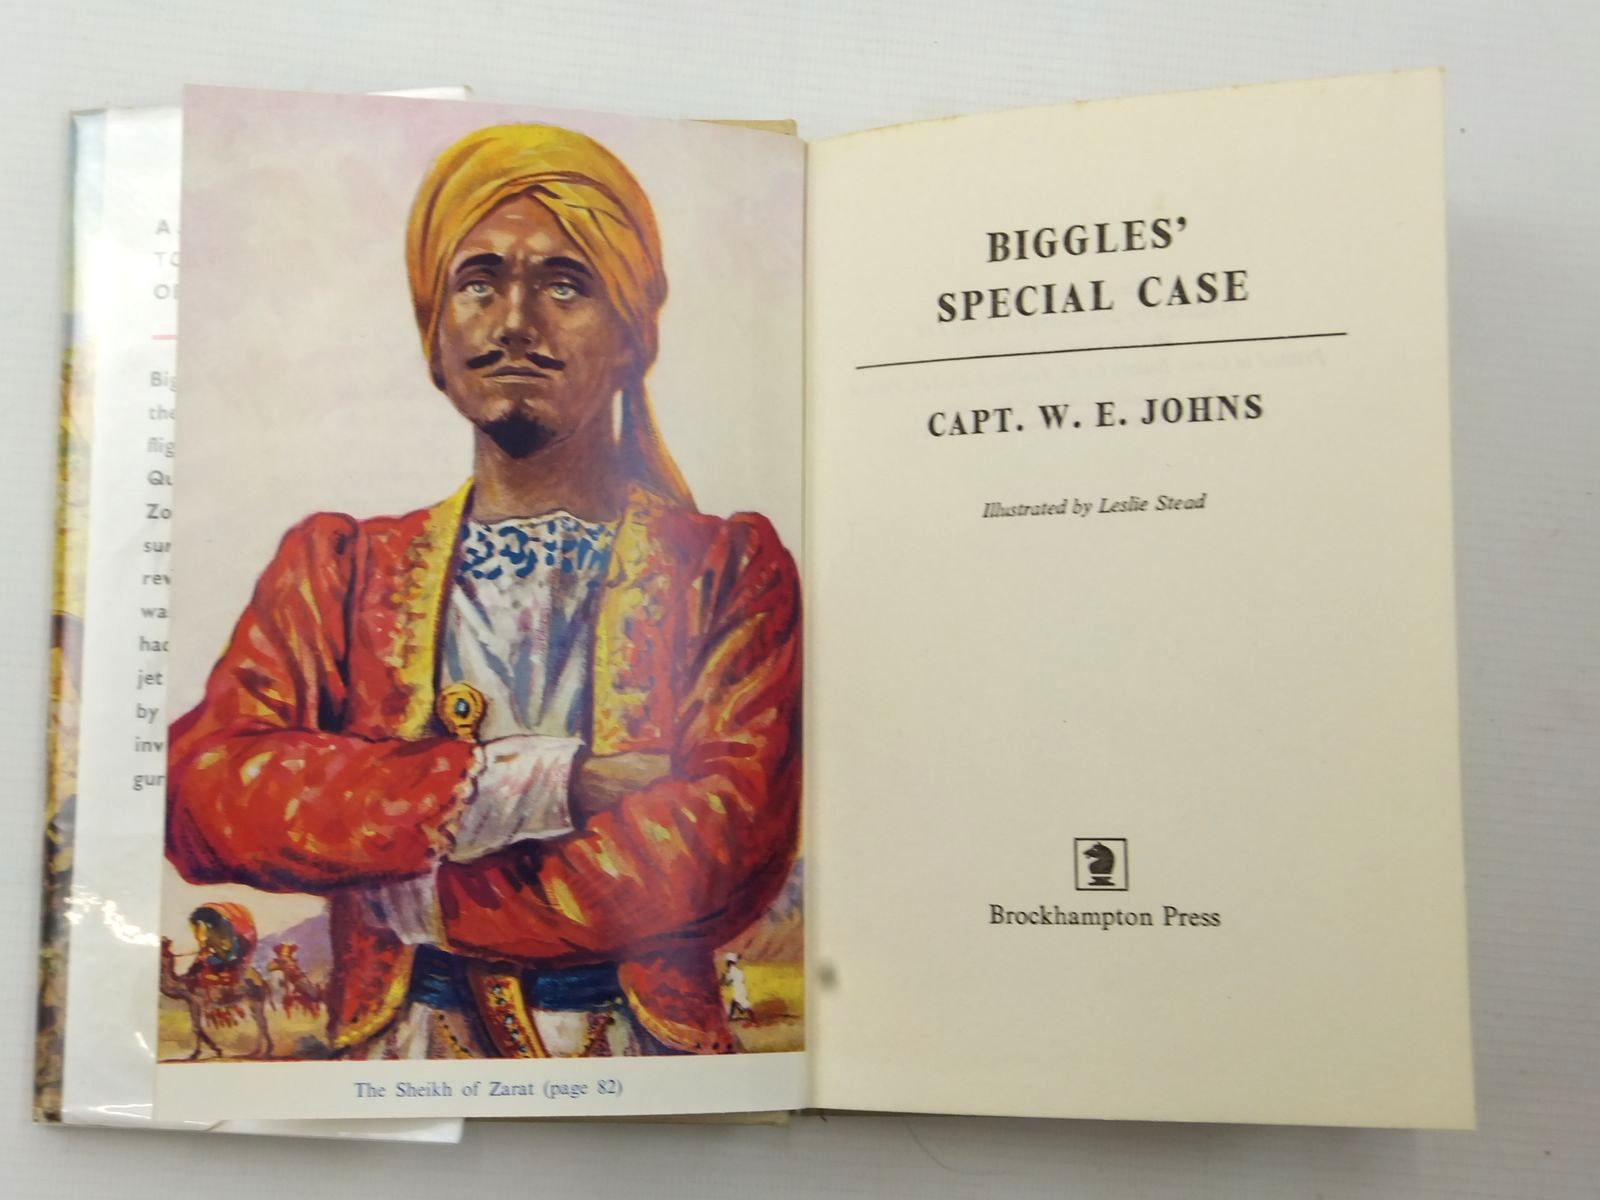 Photo of BIGGLES' SPECIAL CASE written by Johns, W.E. illustrated by Stead, Leslie published by Brockhampton Press (STOCK CODE: 2124056)  for sale by Stella & Rose's Books